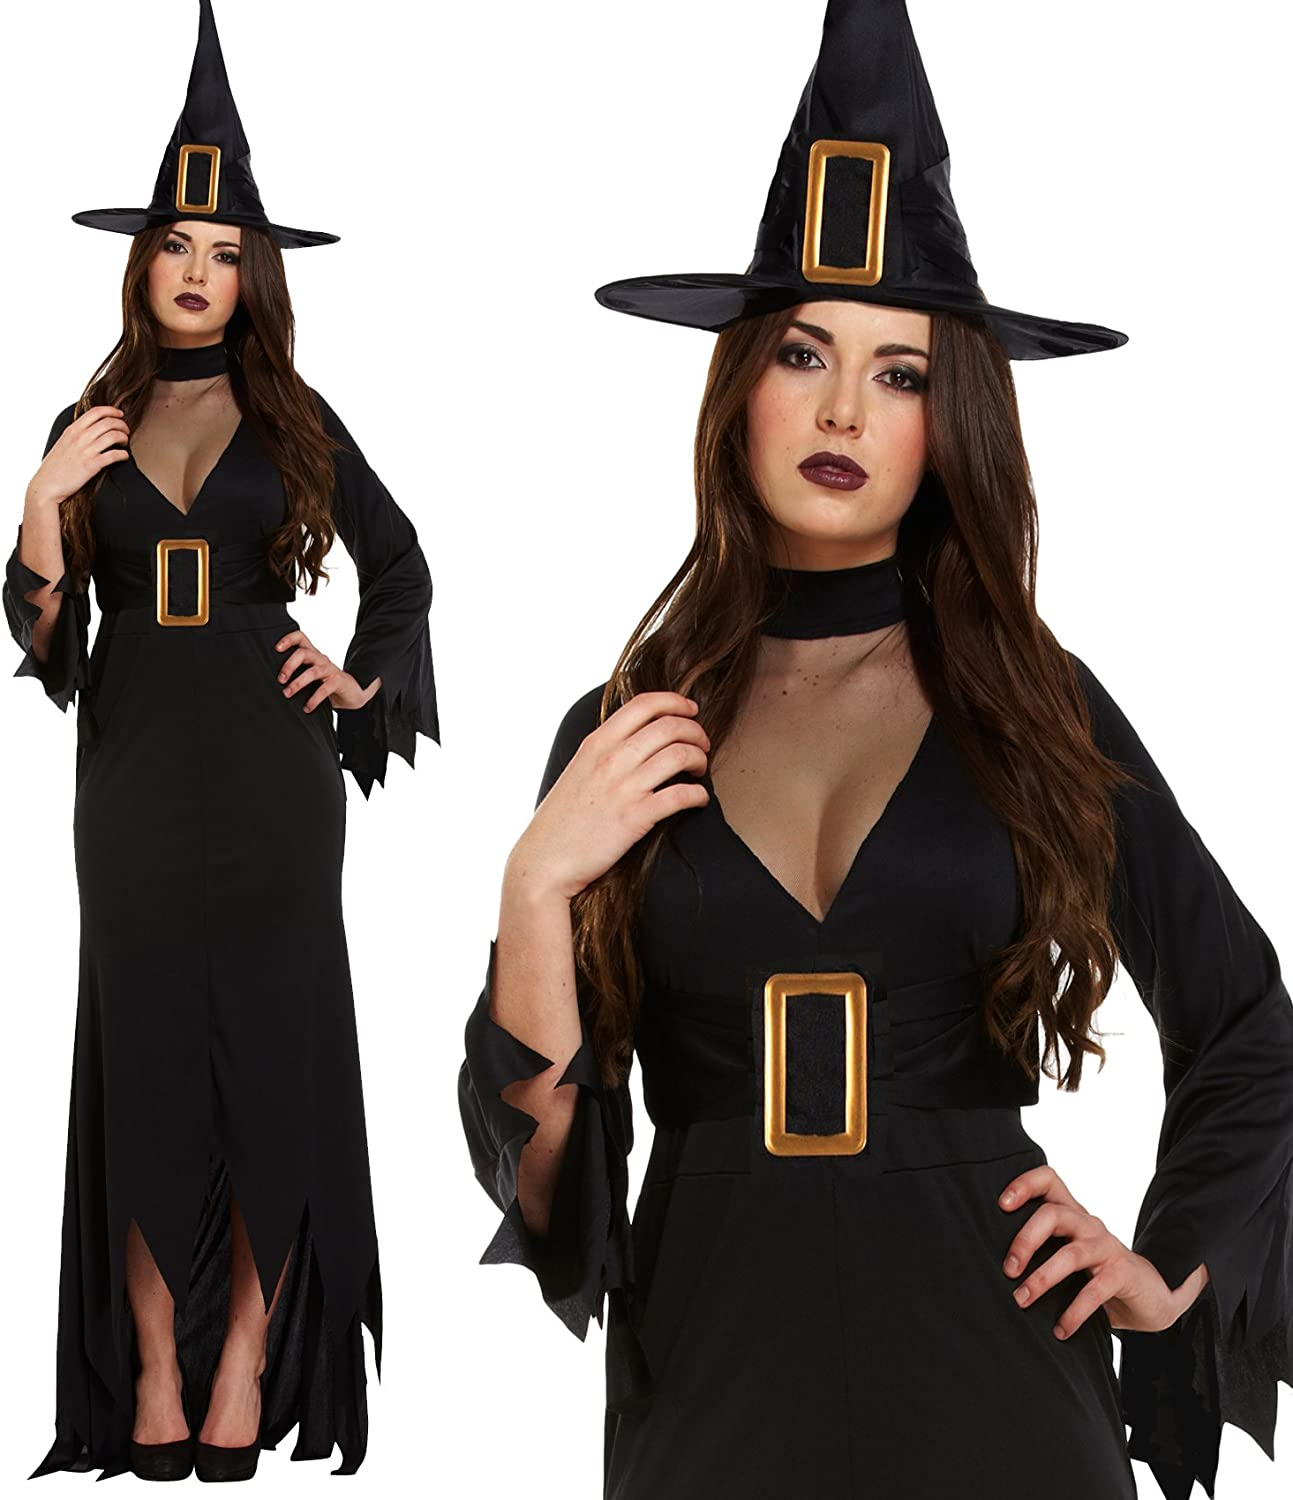 Ladies Lange schwarze Hexe Kostüm Halloween Fancy Dress Outfit (42-46)